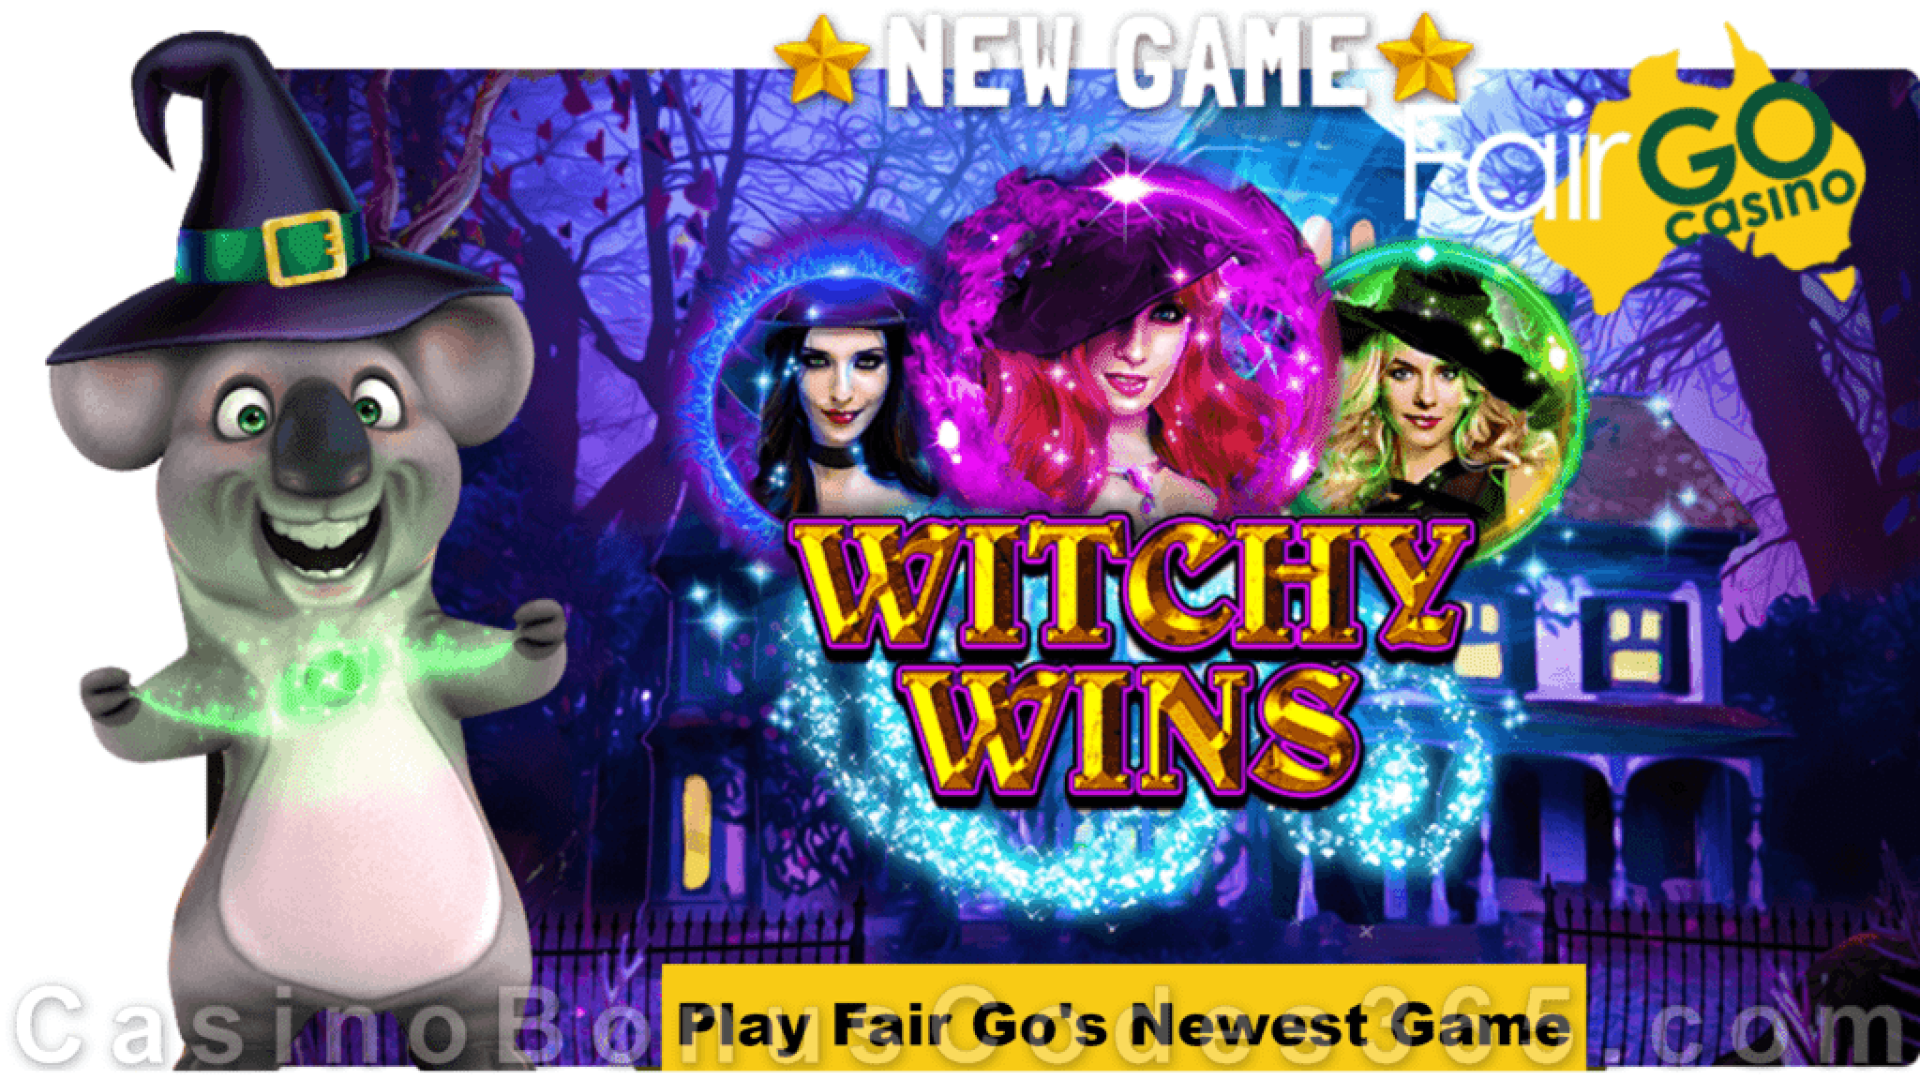 Fair Go Casino RTG Witchy Wins